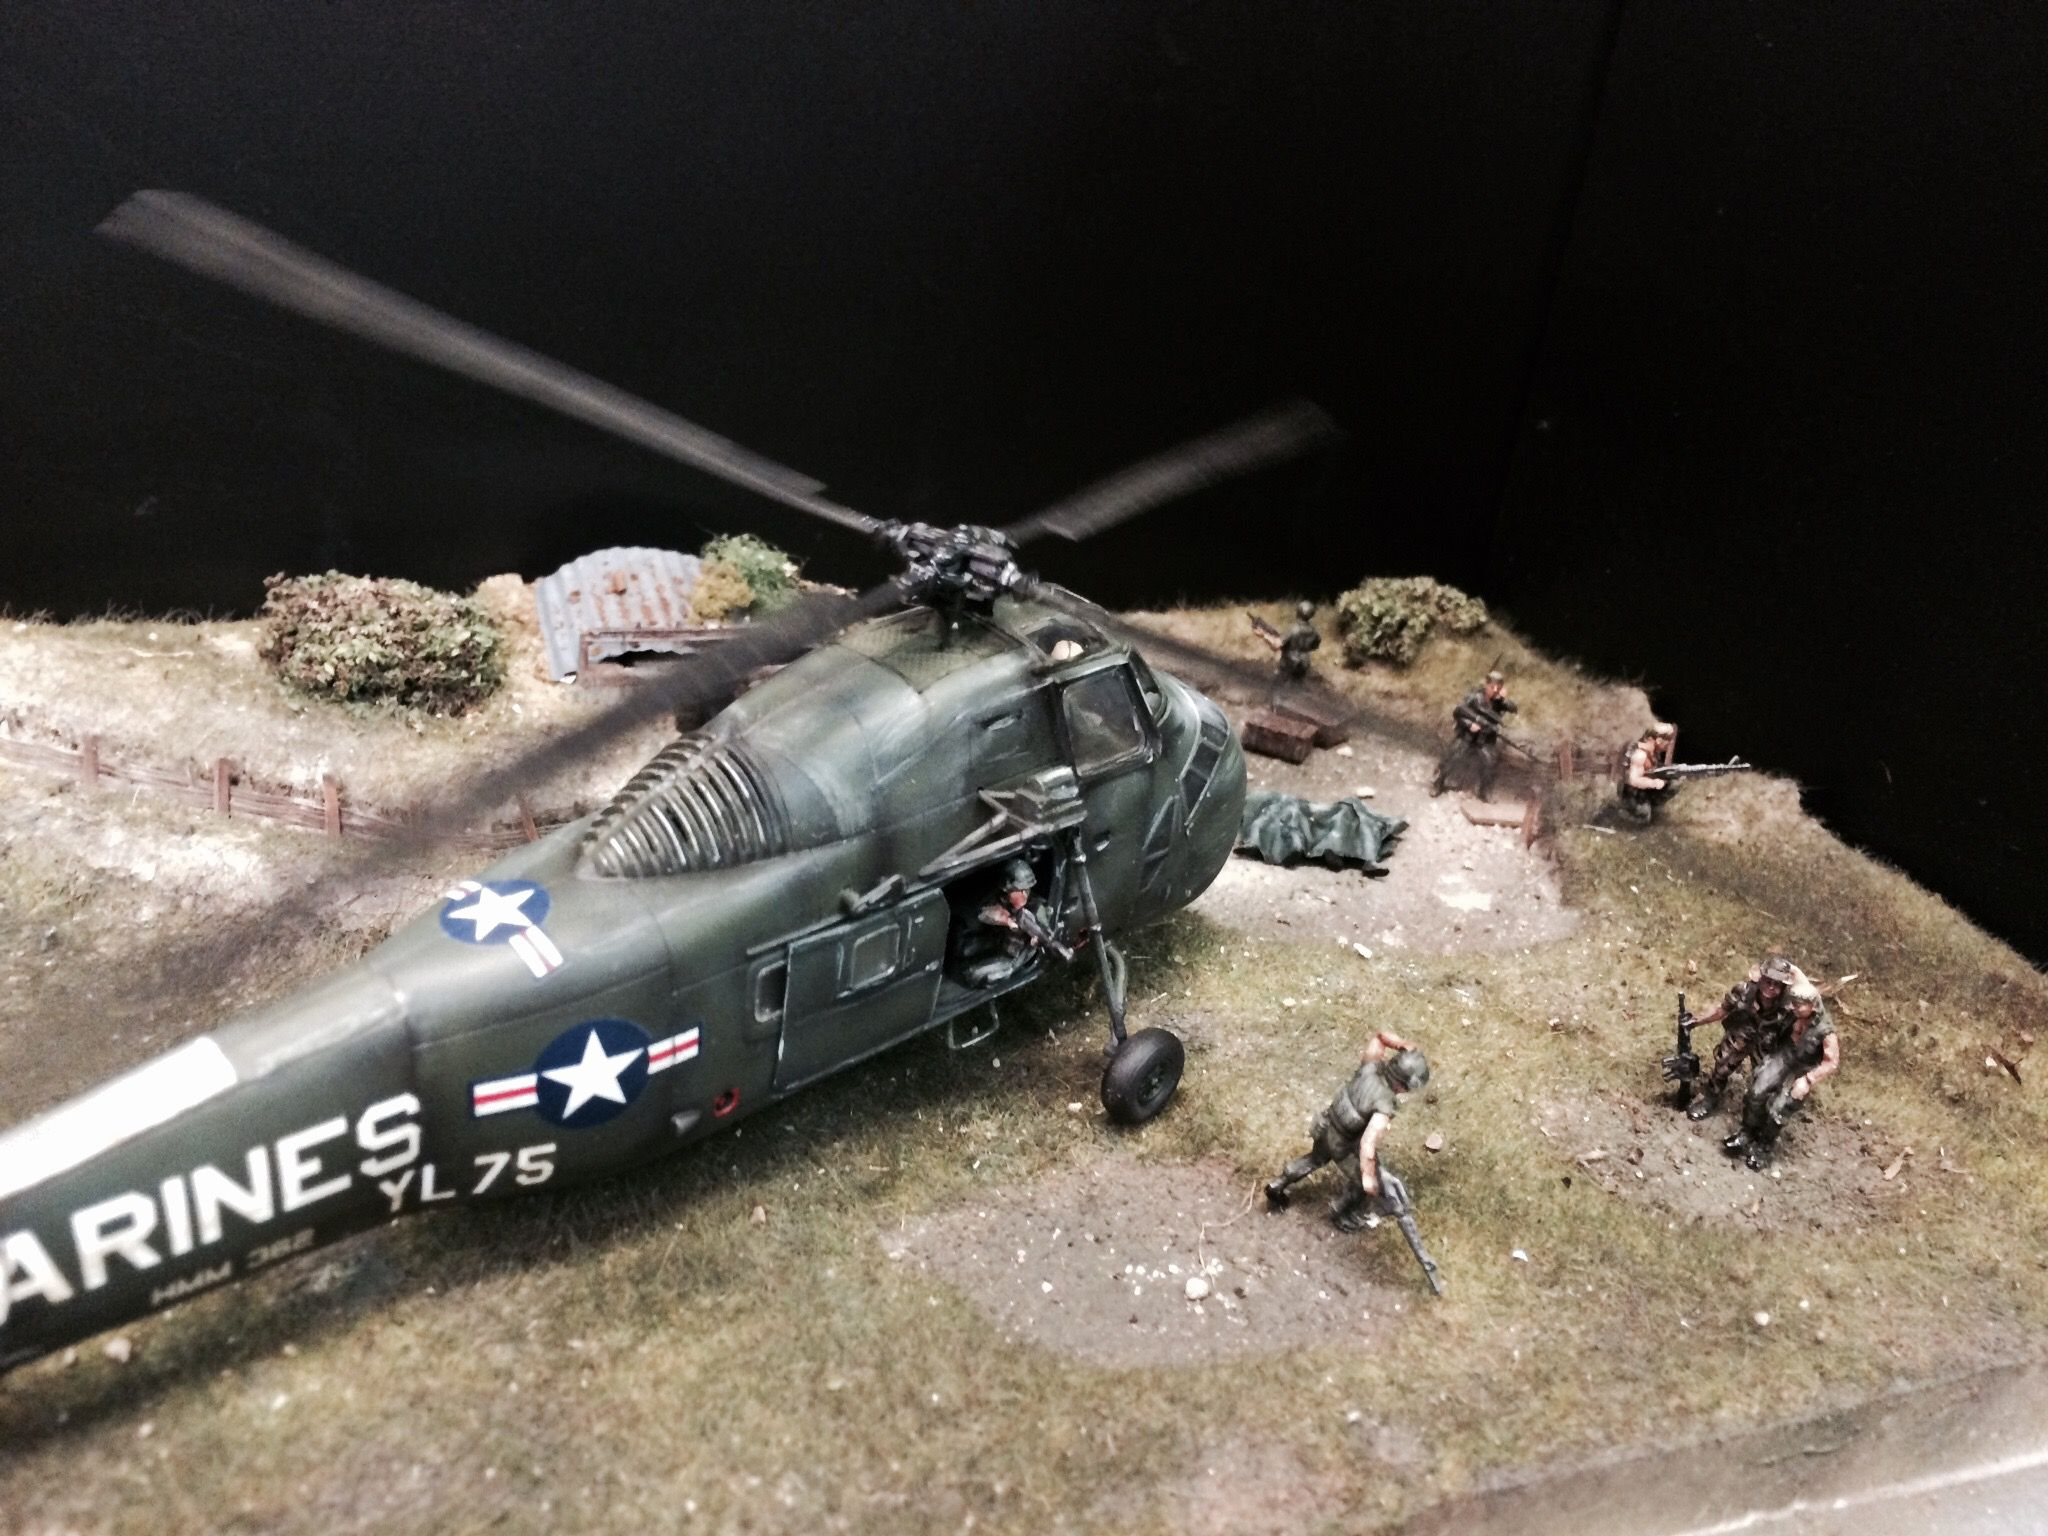 """Diorama 1/72 """"The Rescue"""" Vietnam 1971. By Erik Westberg 1:72 1/35 1:35 US Marines Italeri Sea Horse Special Forces. Made for the Italeri on-line contest 2016 """"Helicopters and Air planes"""""""